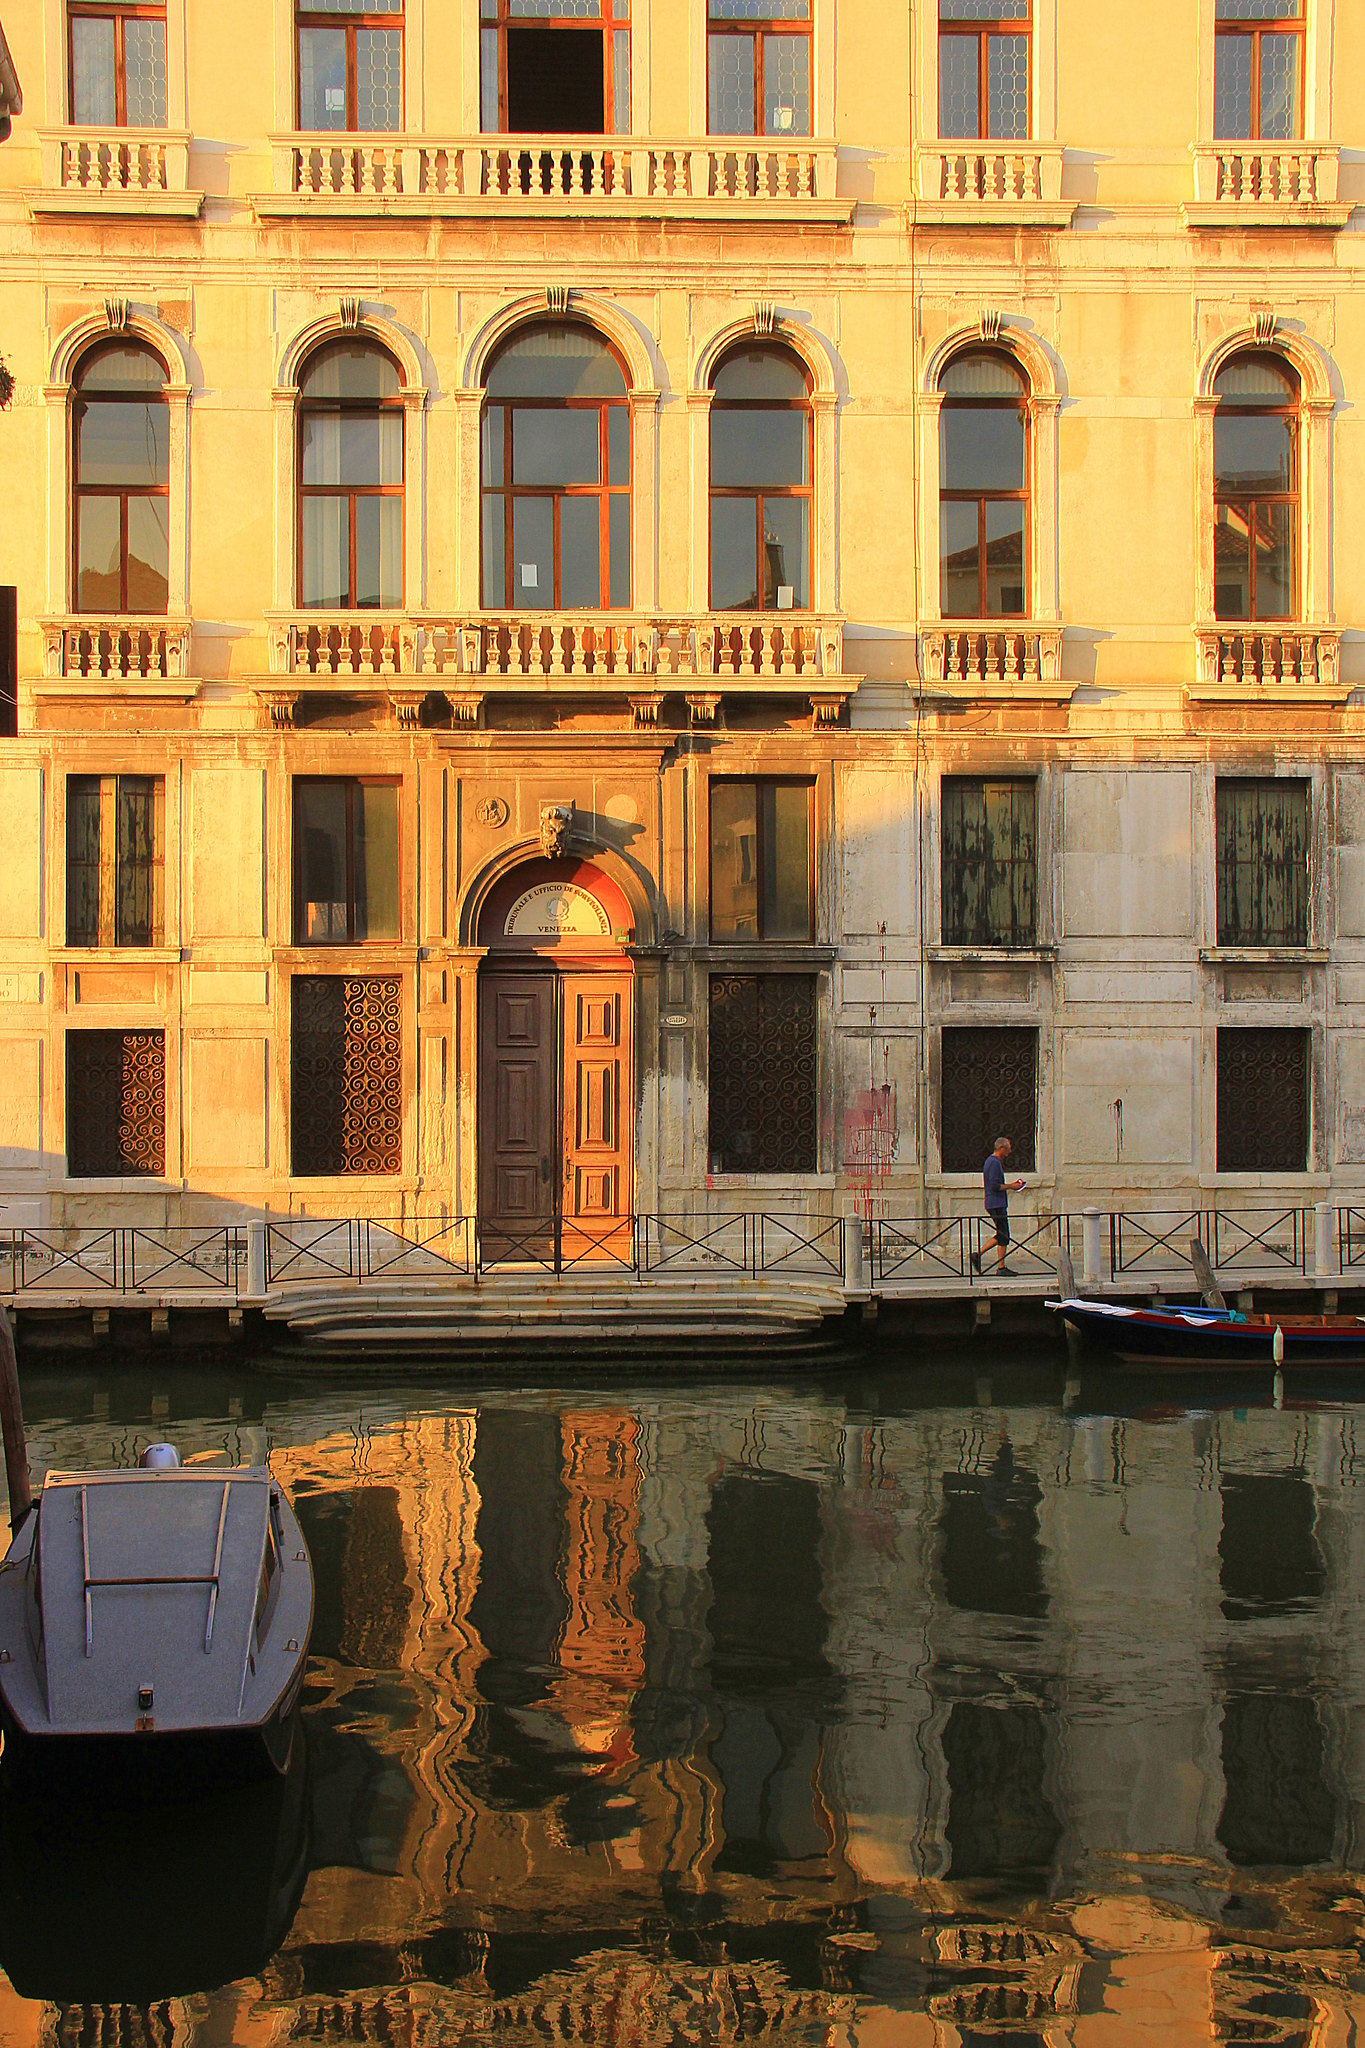 Gorgeous reflections of mansions in Venice